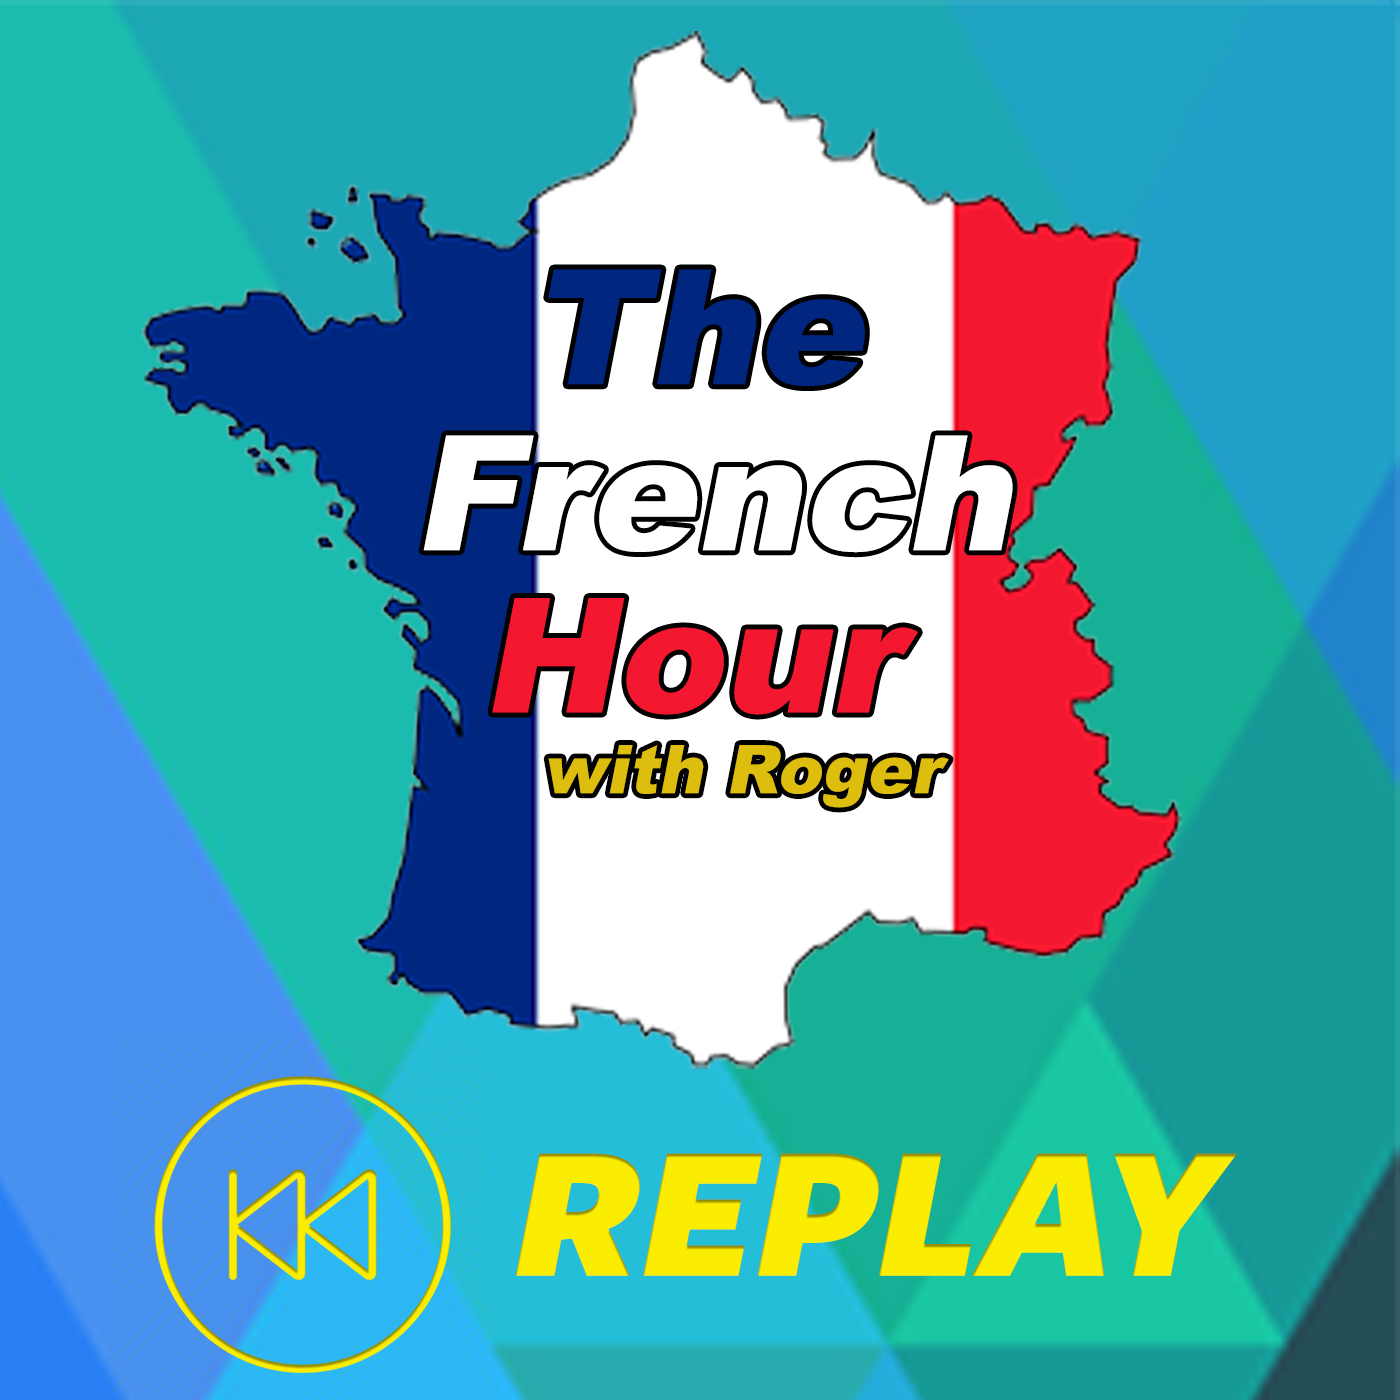 The French Hour with Roger